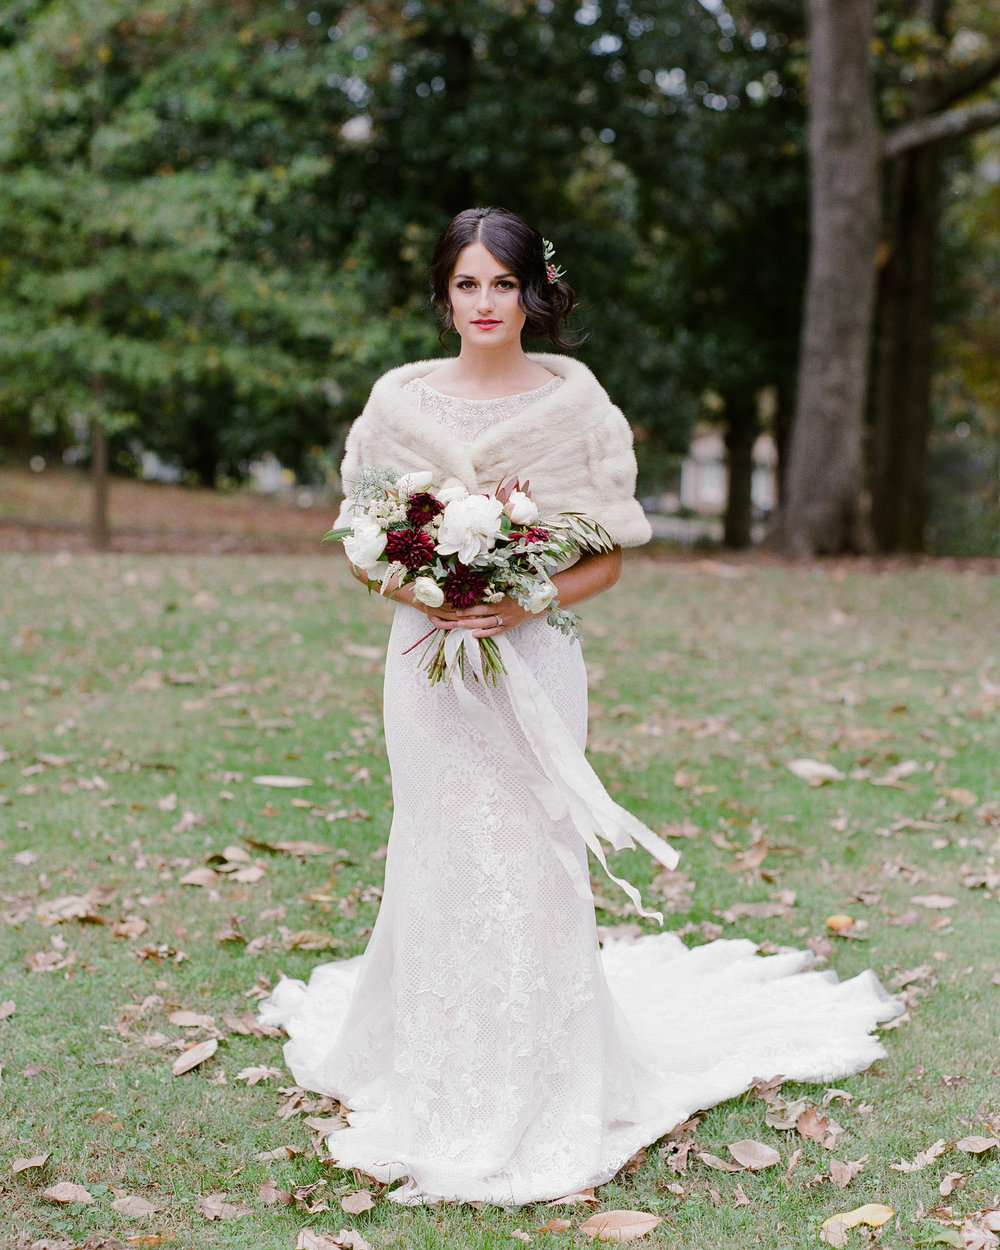 brickyard-marietta-winter-wedding-bride-gown-1018.jpg